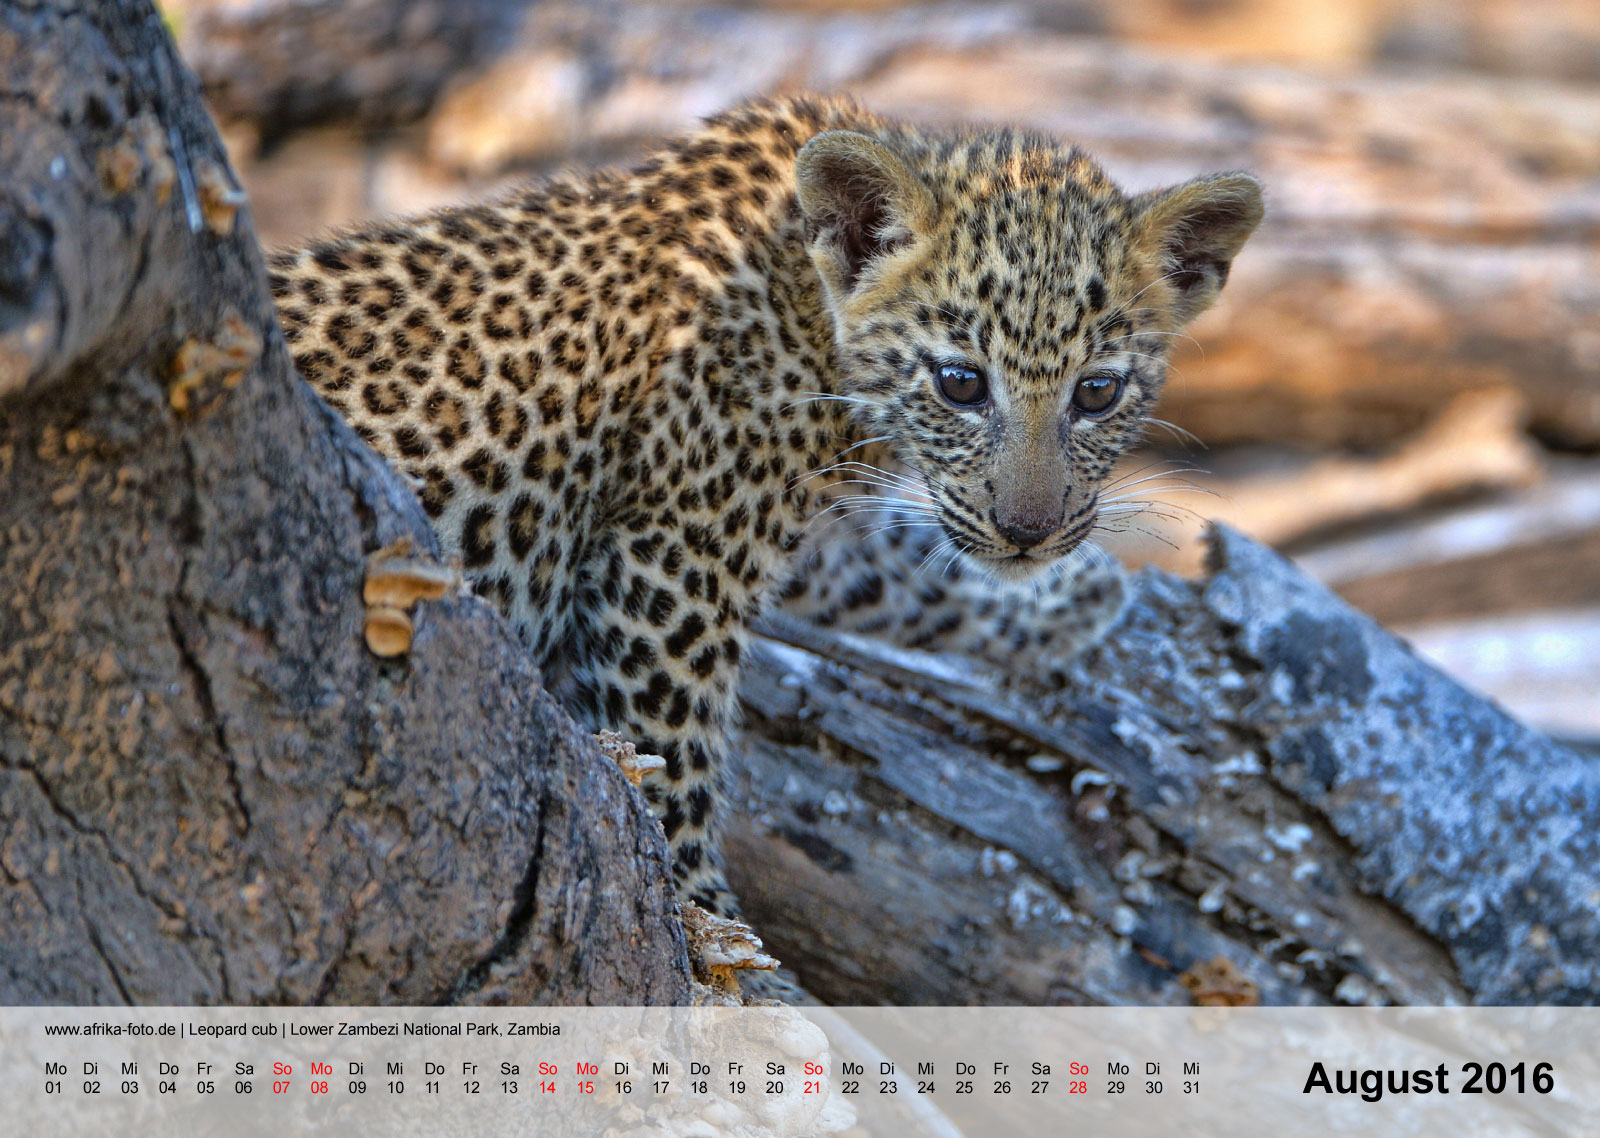 Leopard cub | Lower Zambezi National Park, Zambia | Kalender 2016 - August